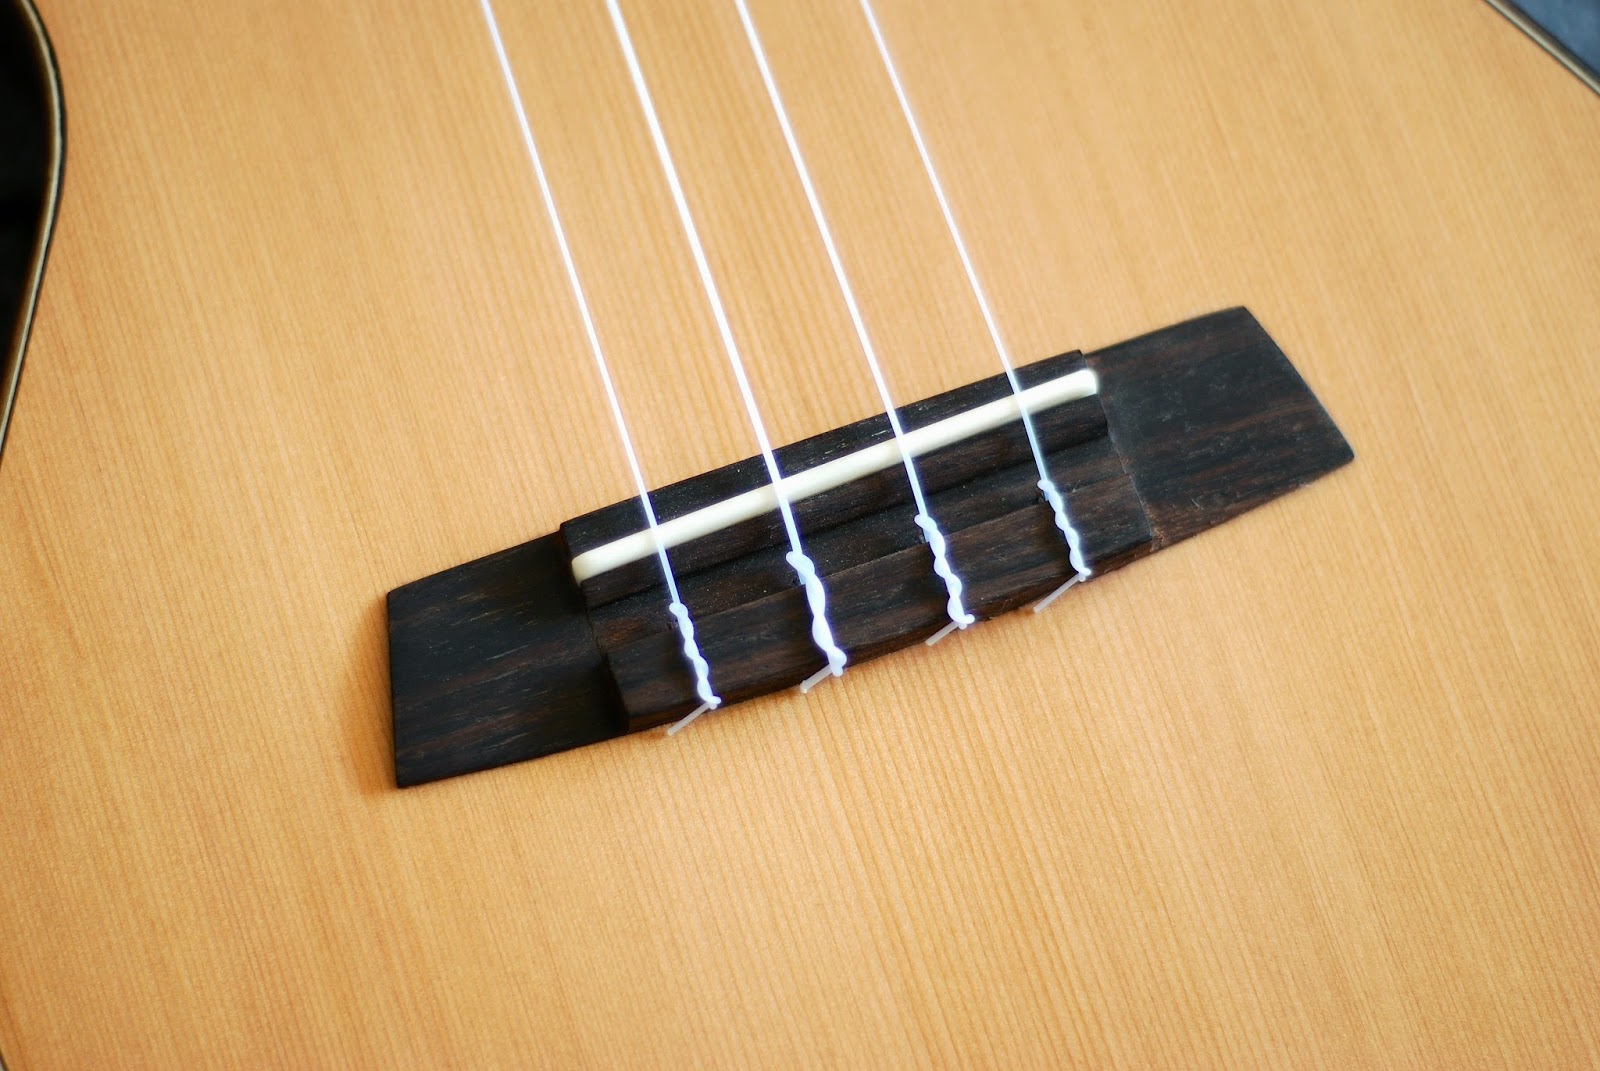 Kremona Coco Tenor Ukulele bridge